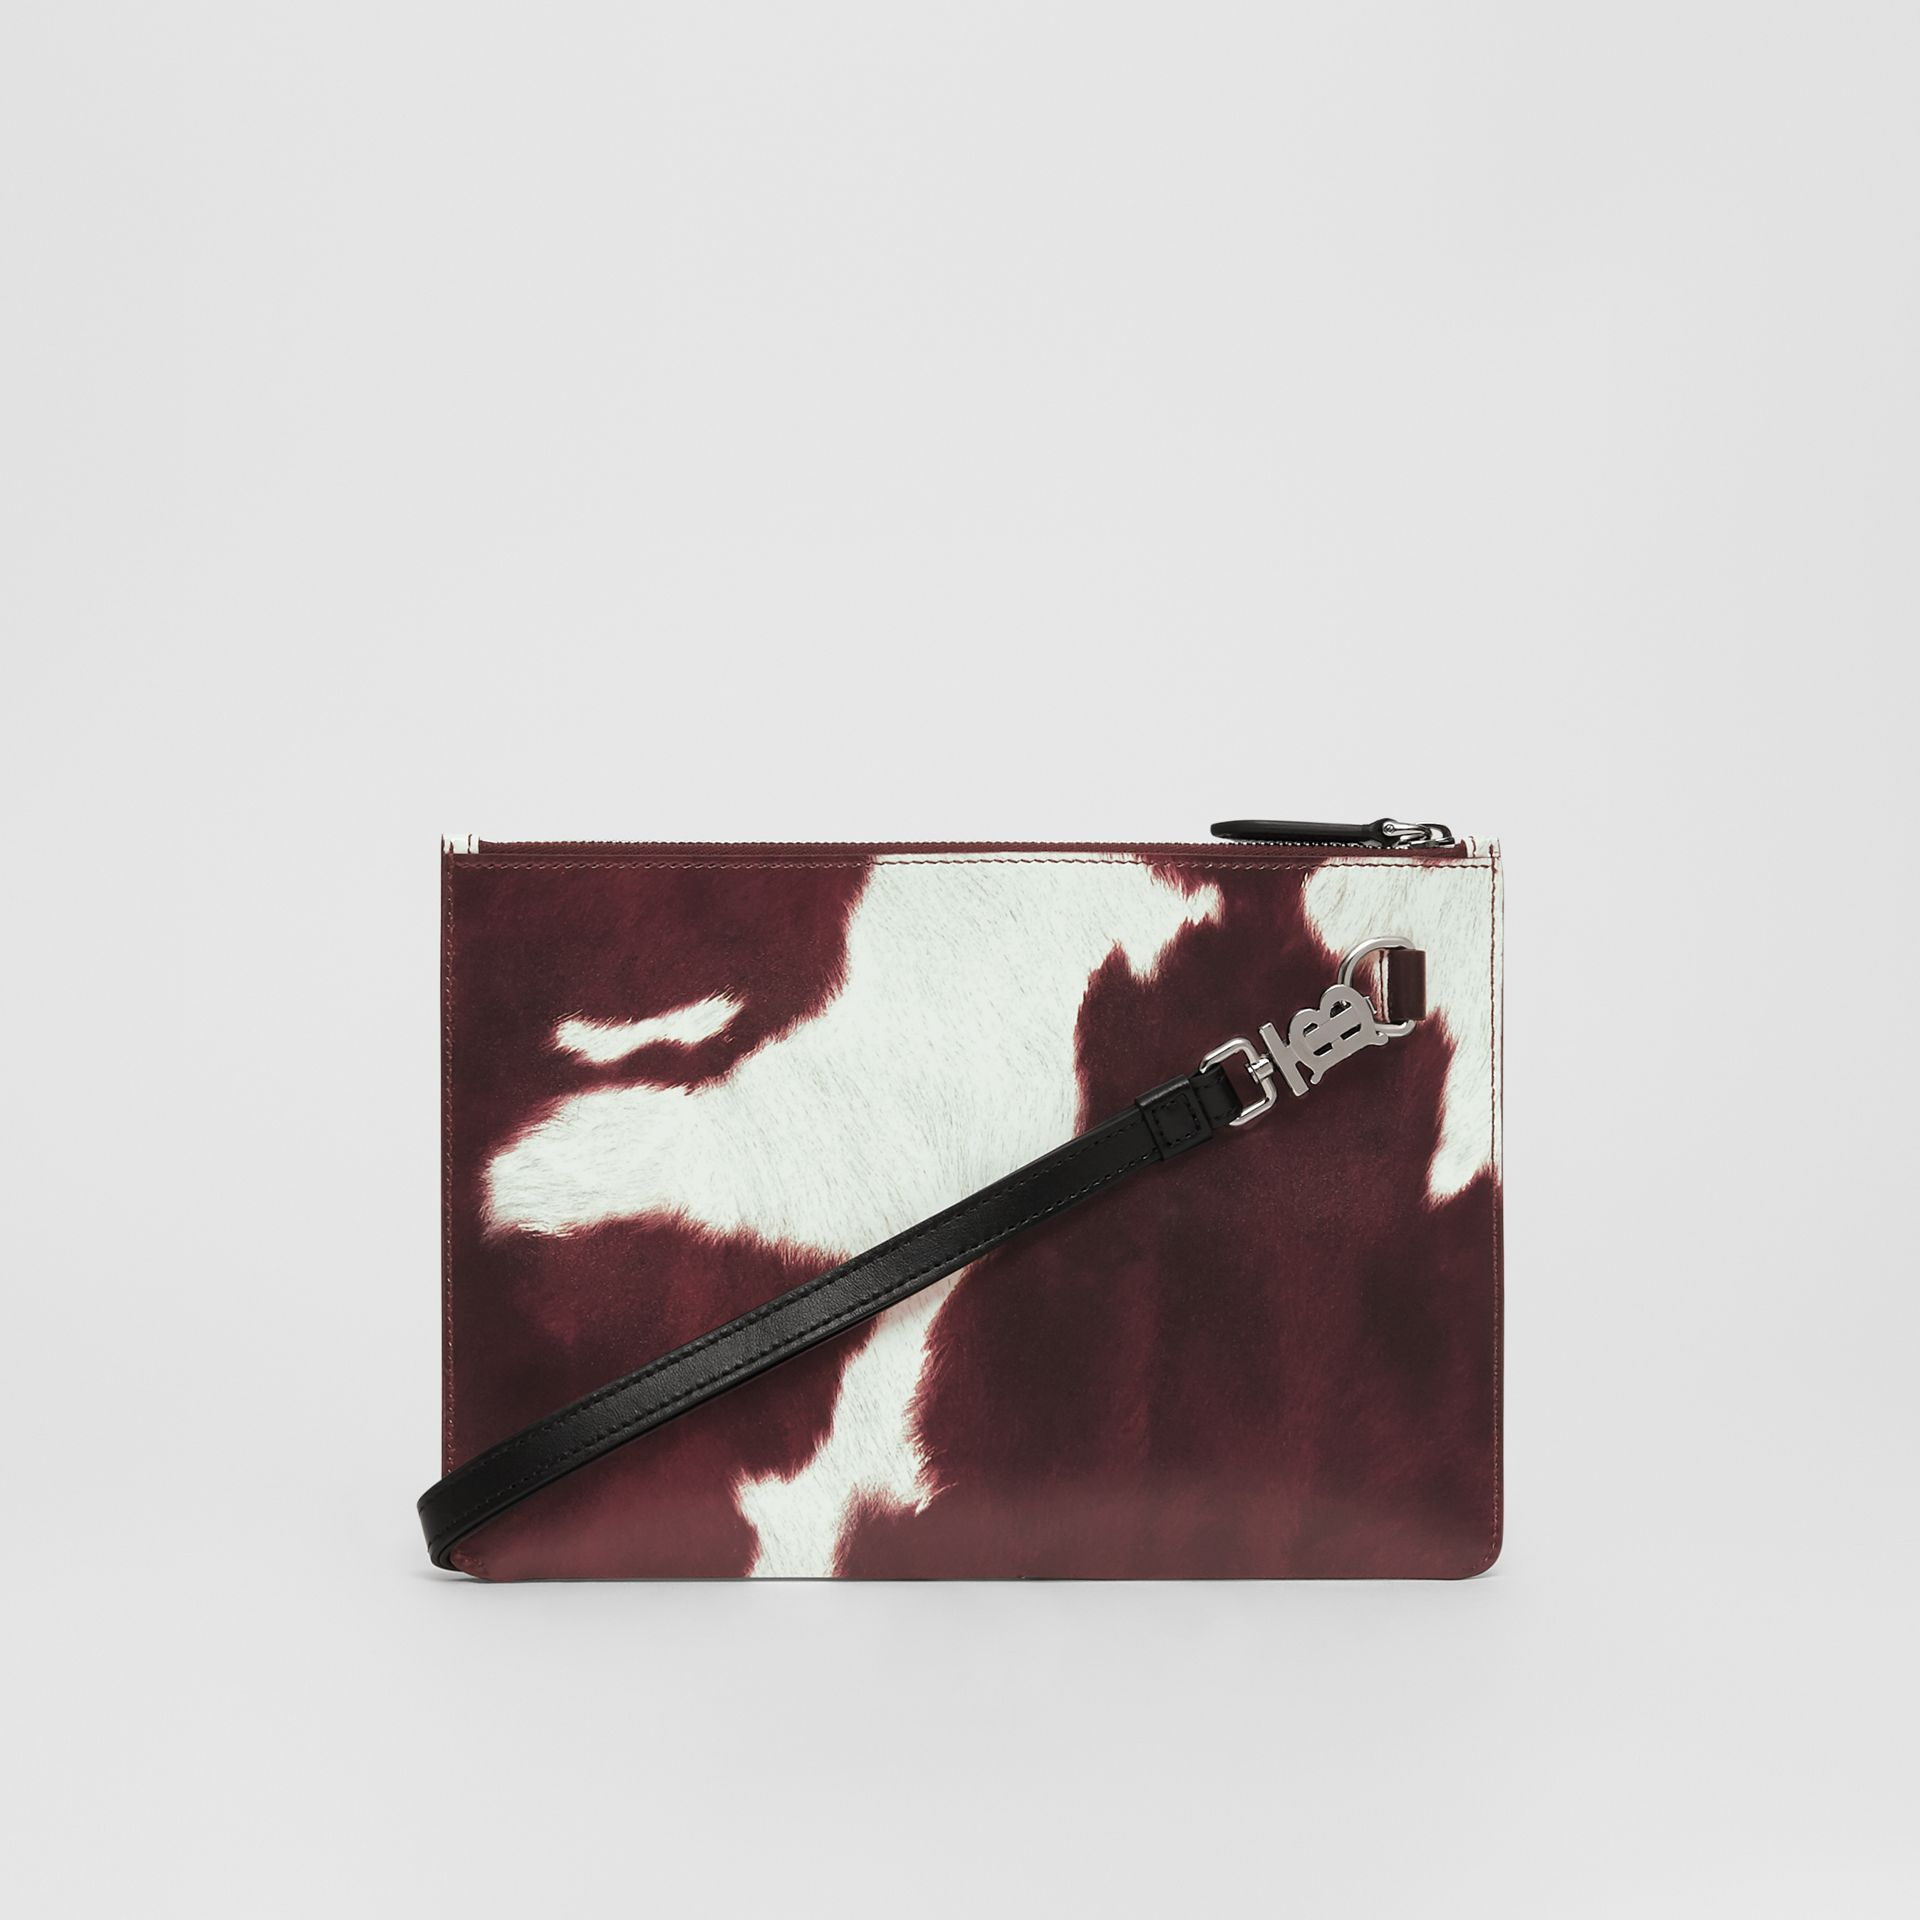 Cow Print Leather Zip Pouch in Mahogany - Women | Burberry United States - gallery image 5